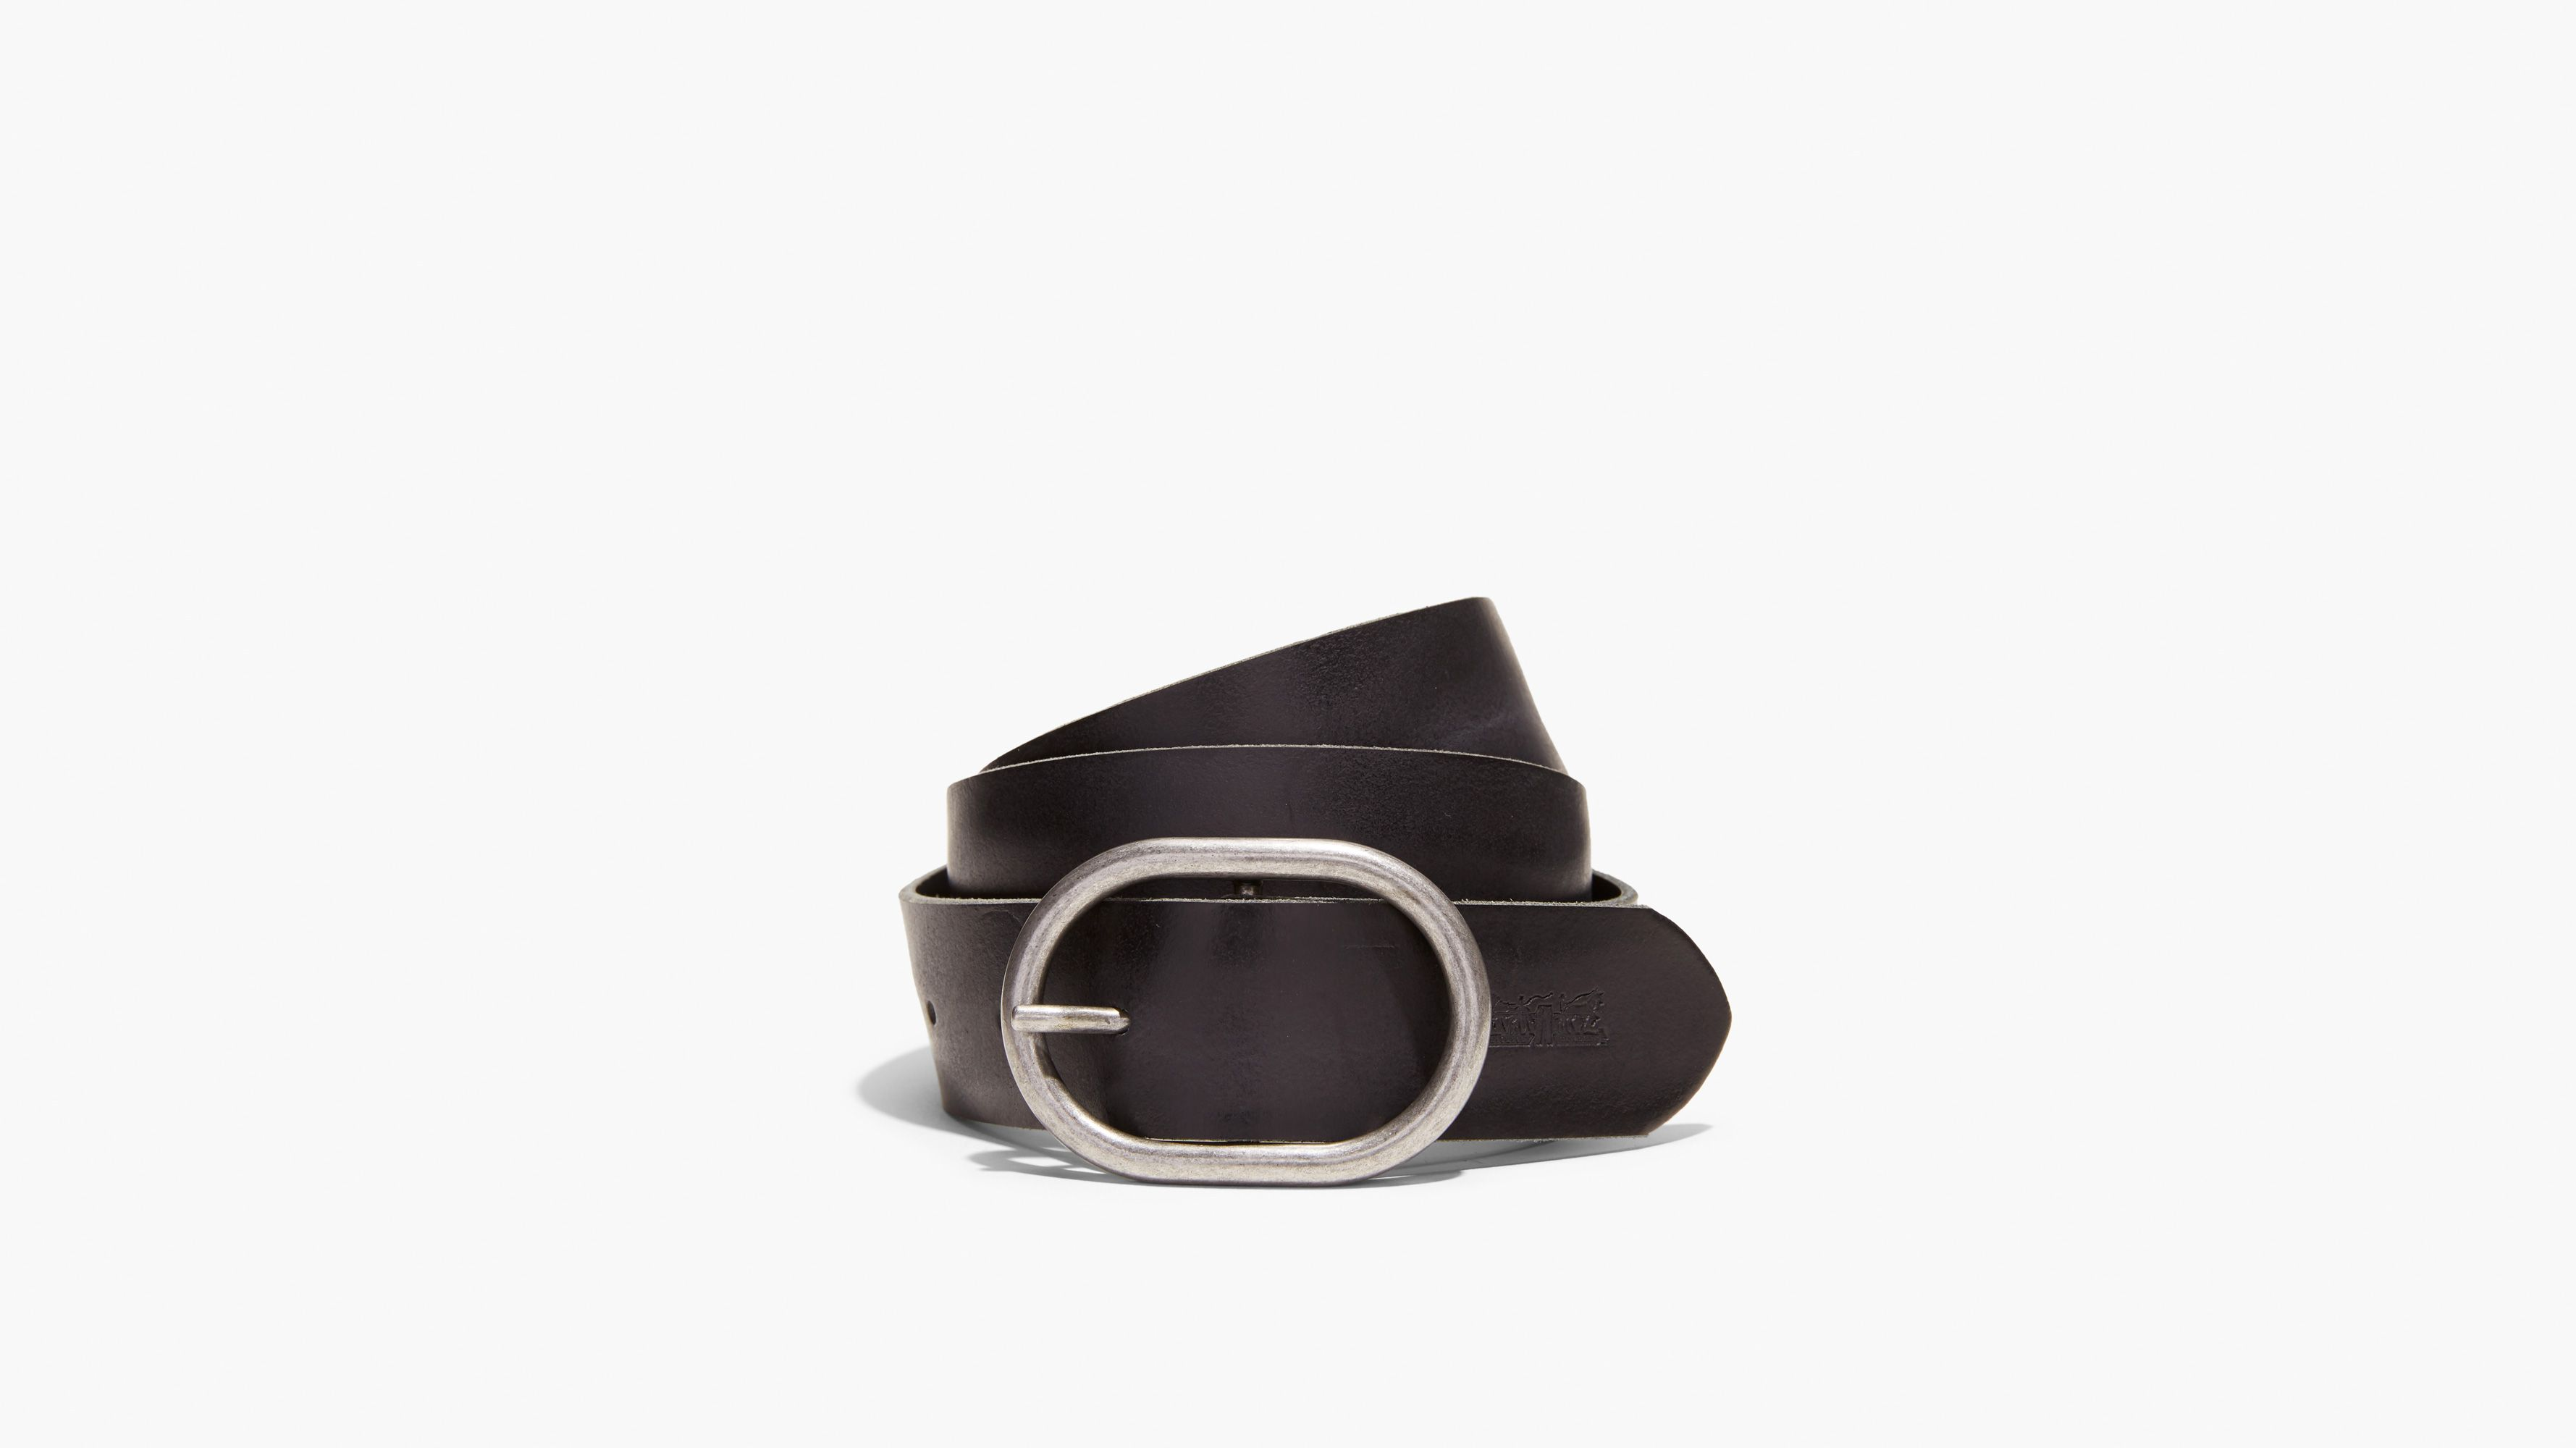 Black leather belts suitable for men and women from small to XX large sizes